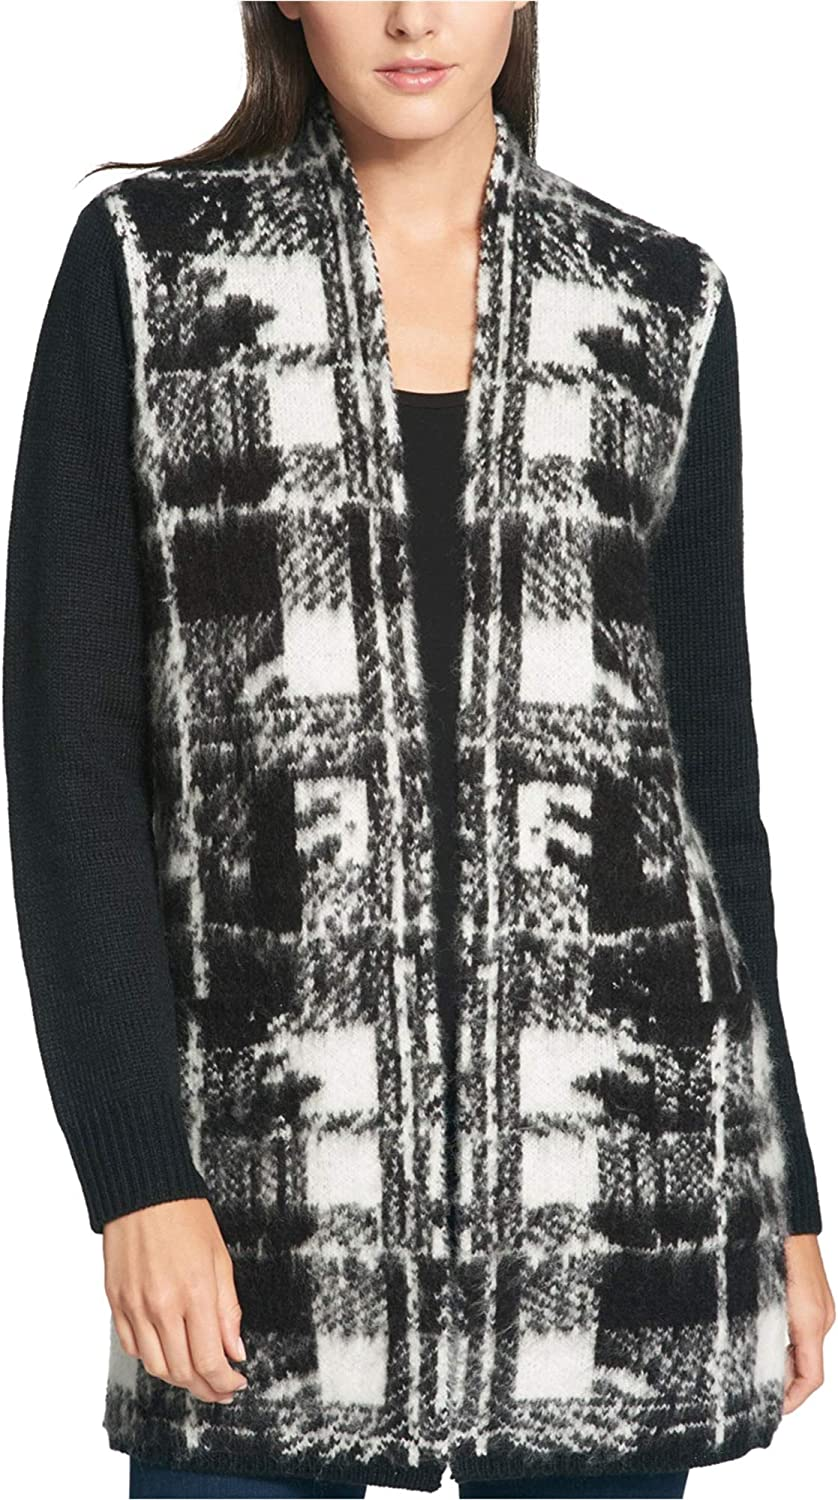 Tommy Hilfiger Womens Colorblocked Cardigan Sweater